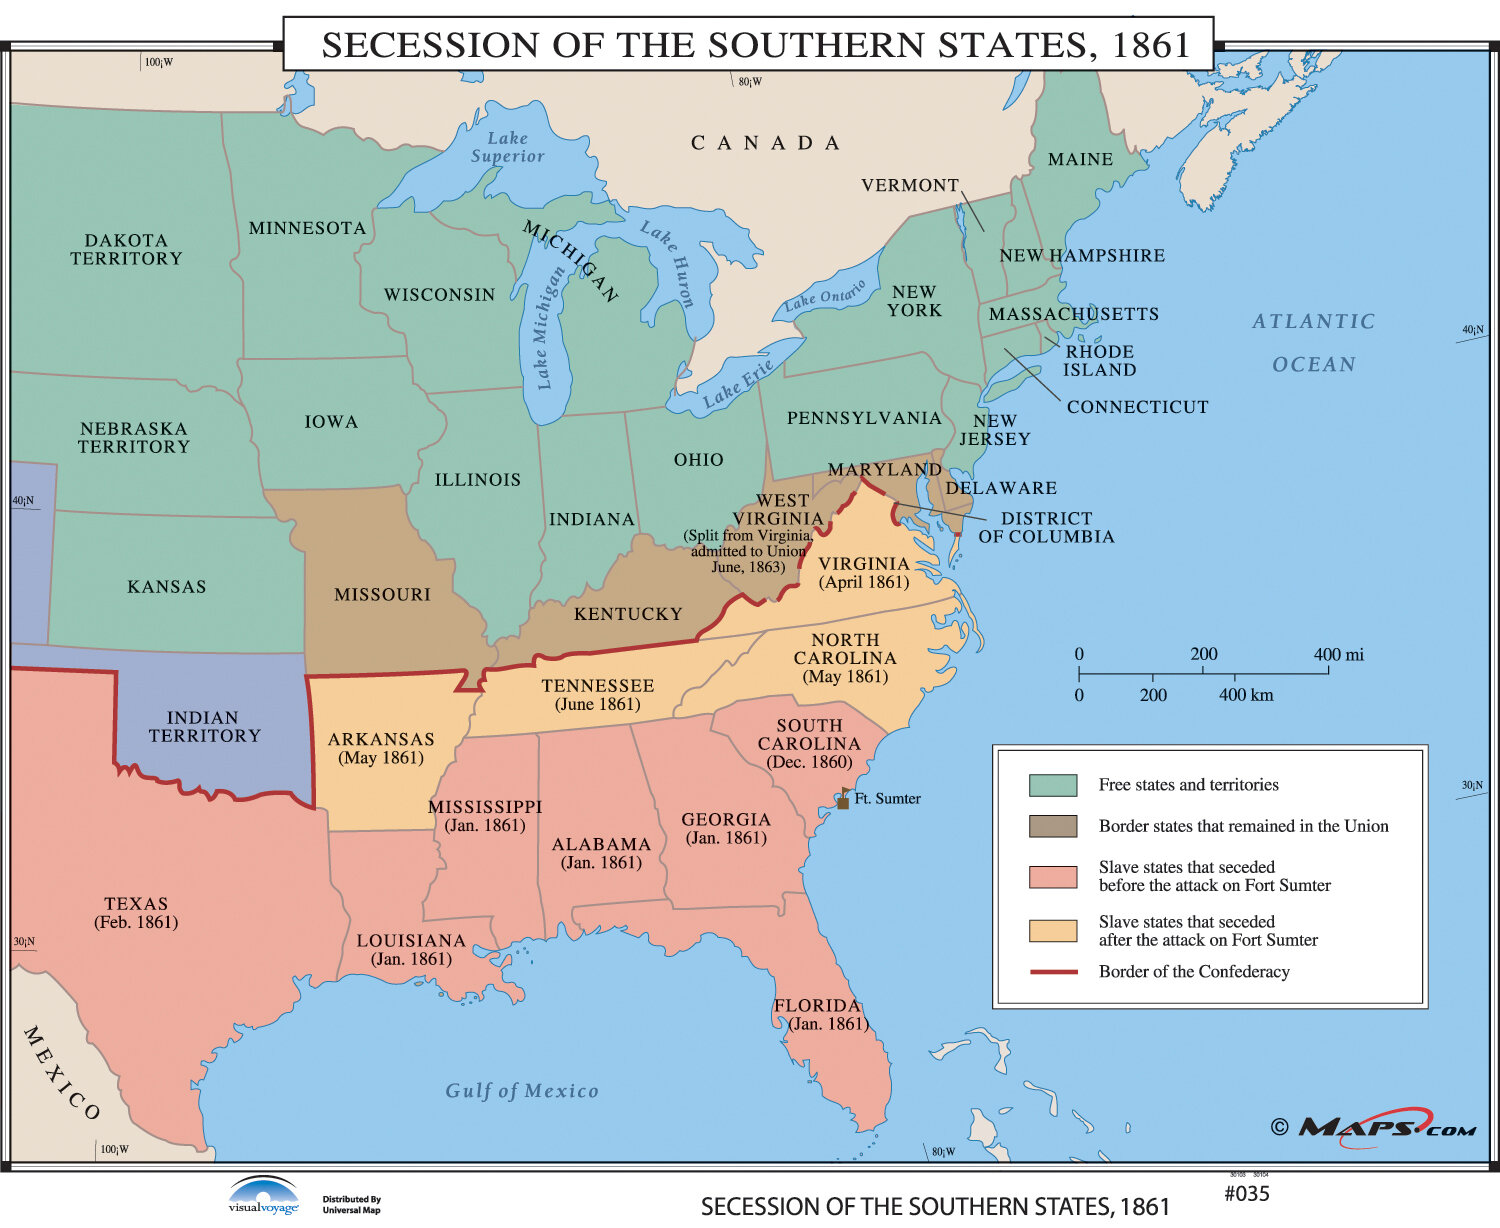 Us Map Of Southern States Universal Map U.S. History Wall Maps   Secession of the Southern